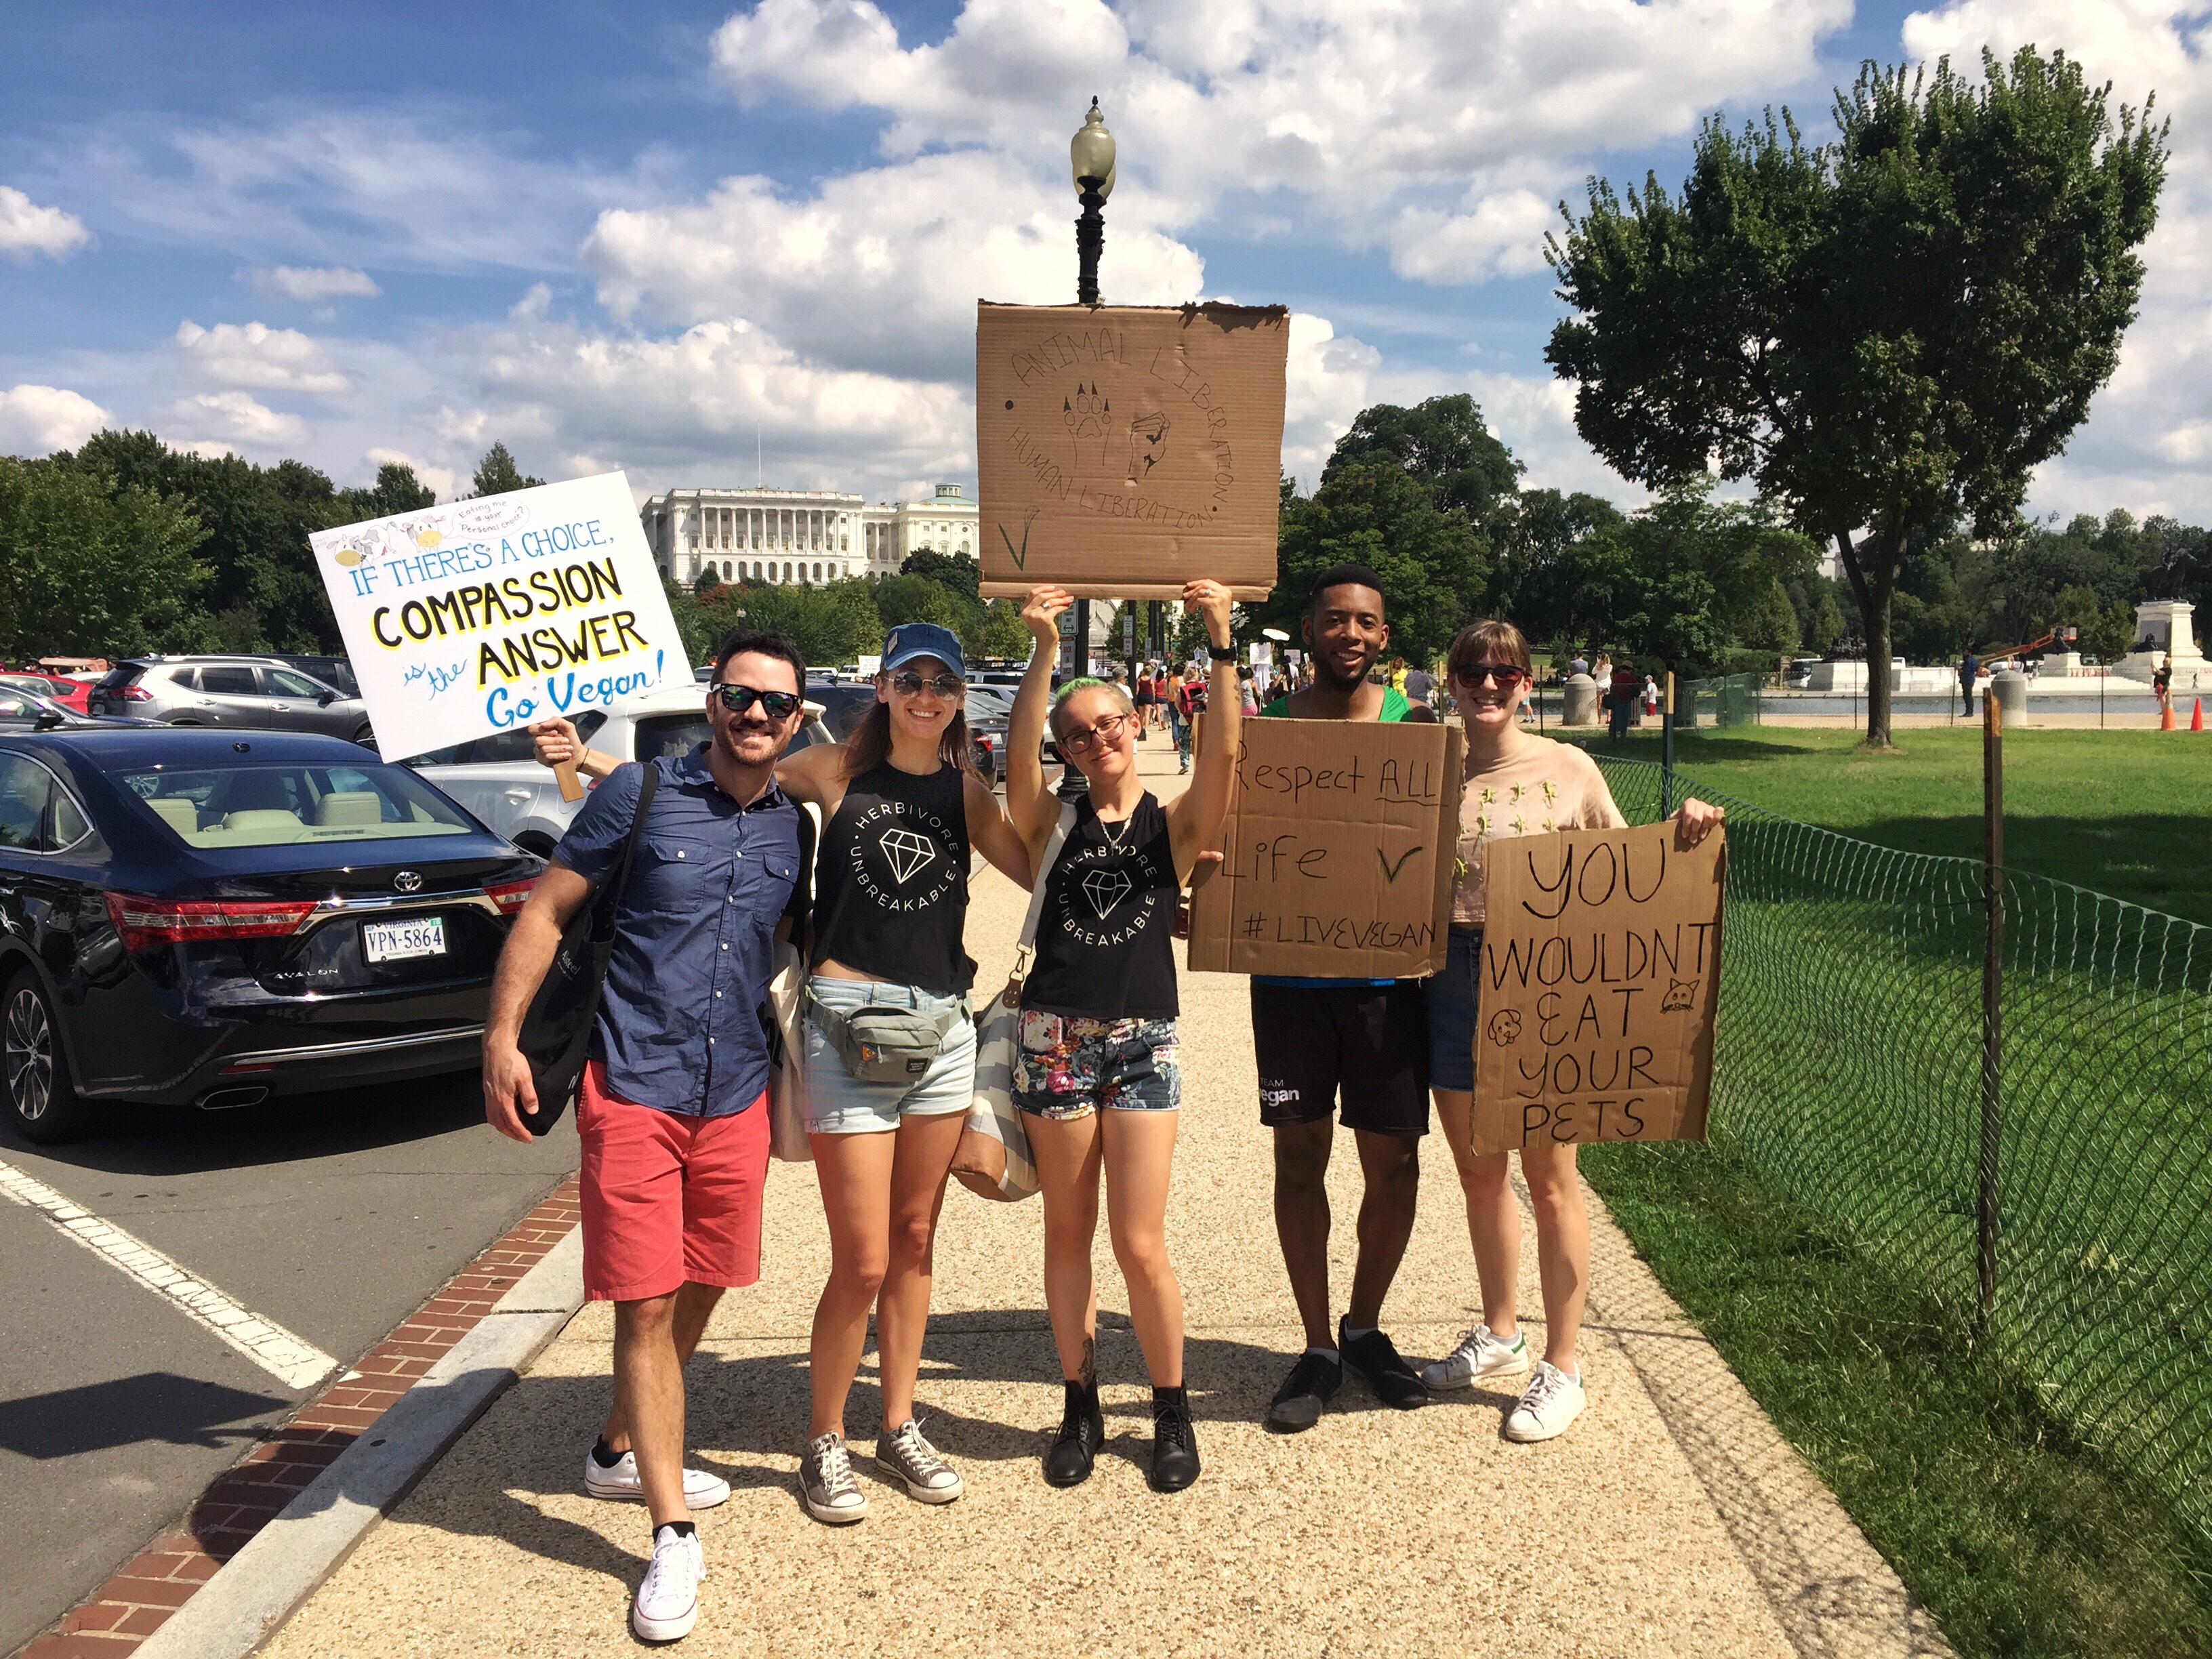 vegans pose animal rights march dc capitol building